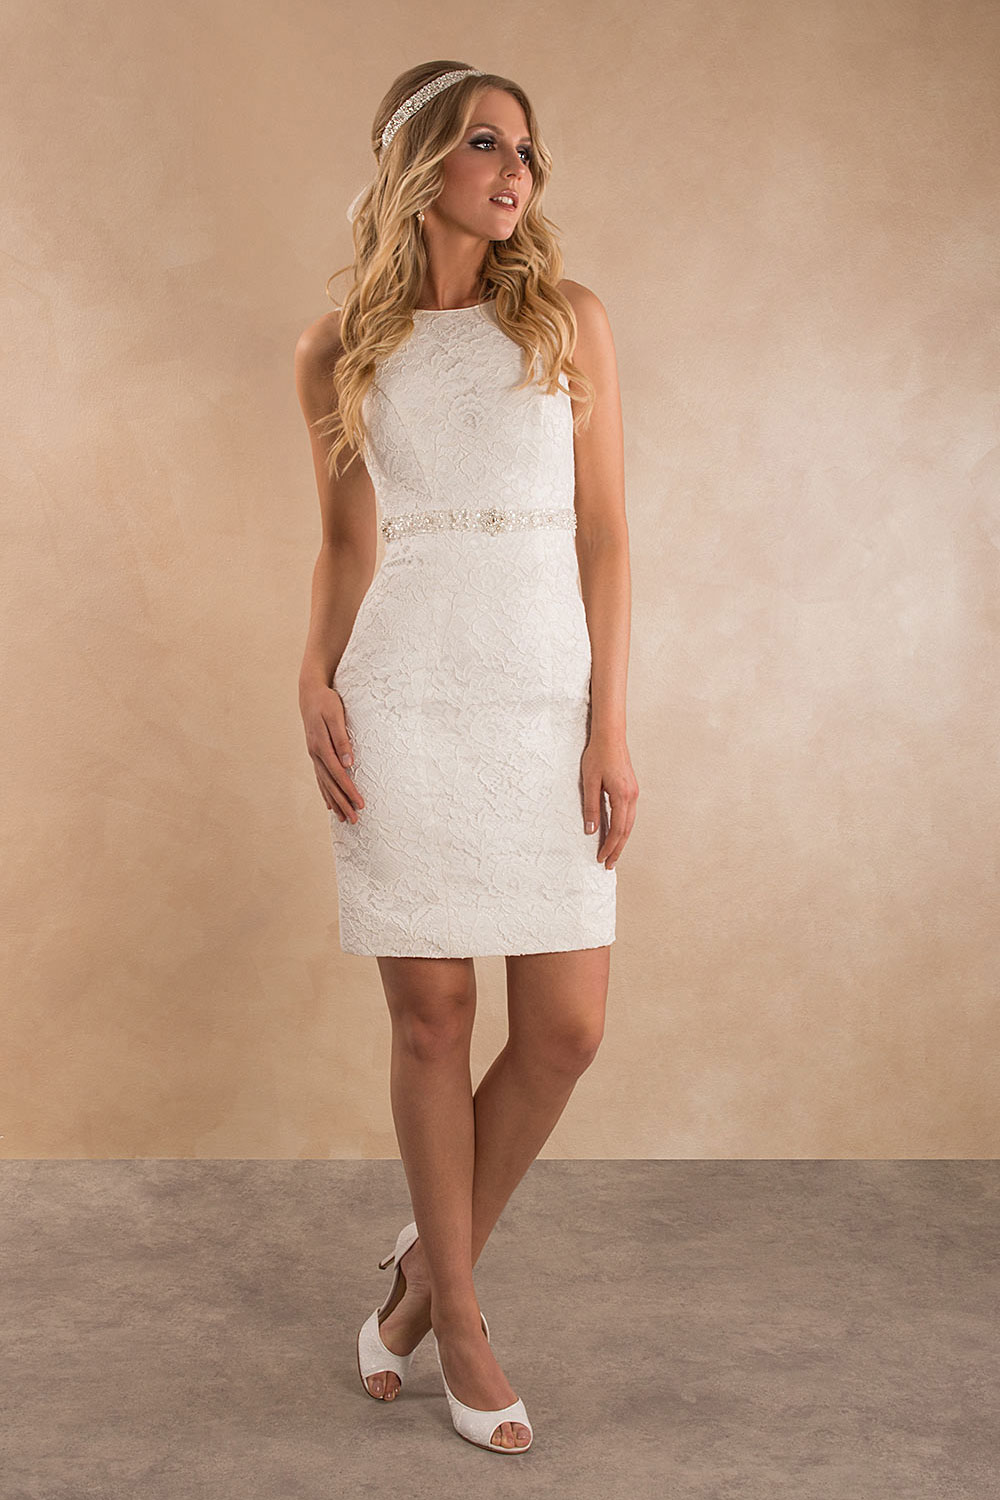 Standesamtkleid A7011 MissGermany-Collection